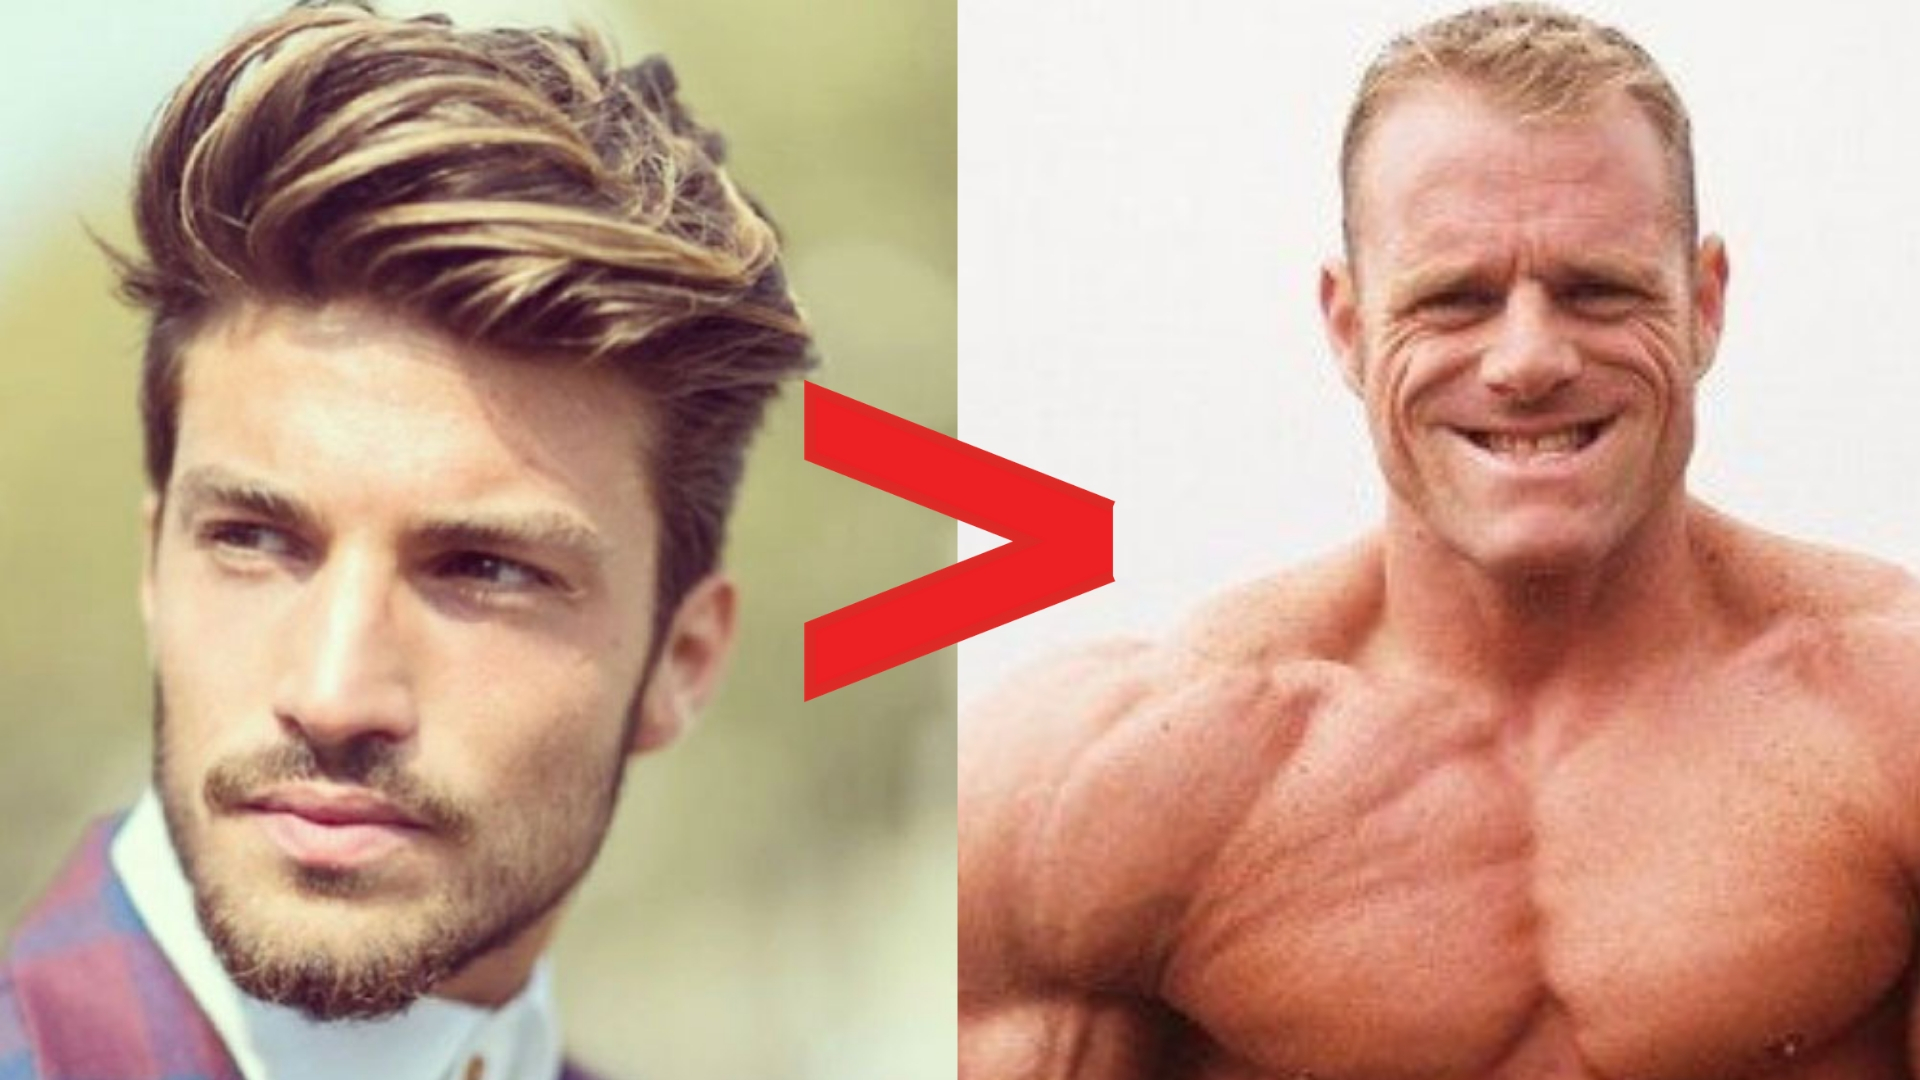 Keeping Your Hair Vs Gaining More Muscle With Androgenic Steroids